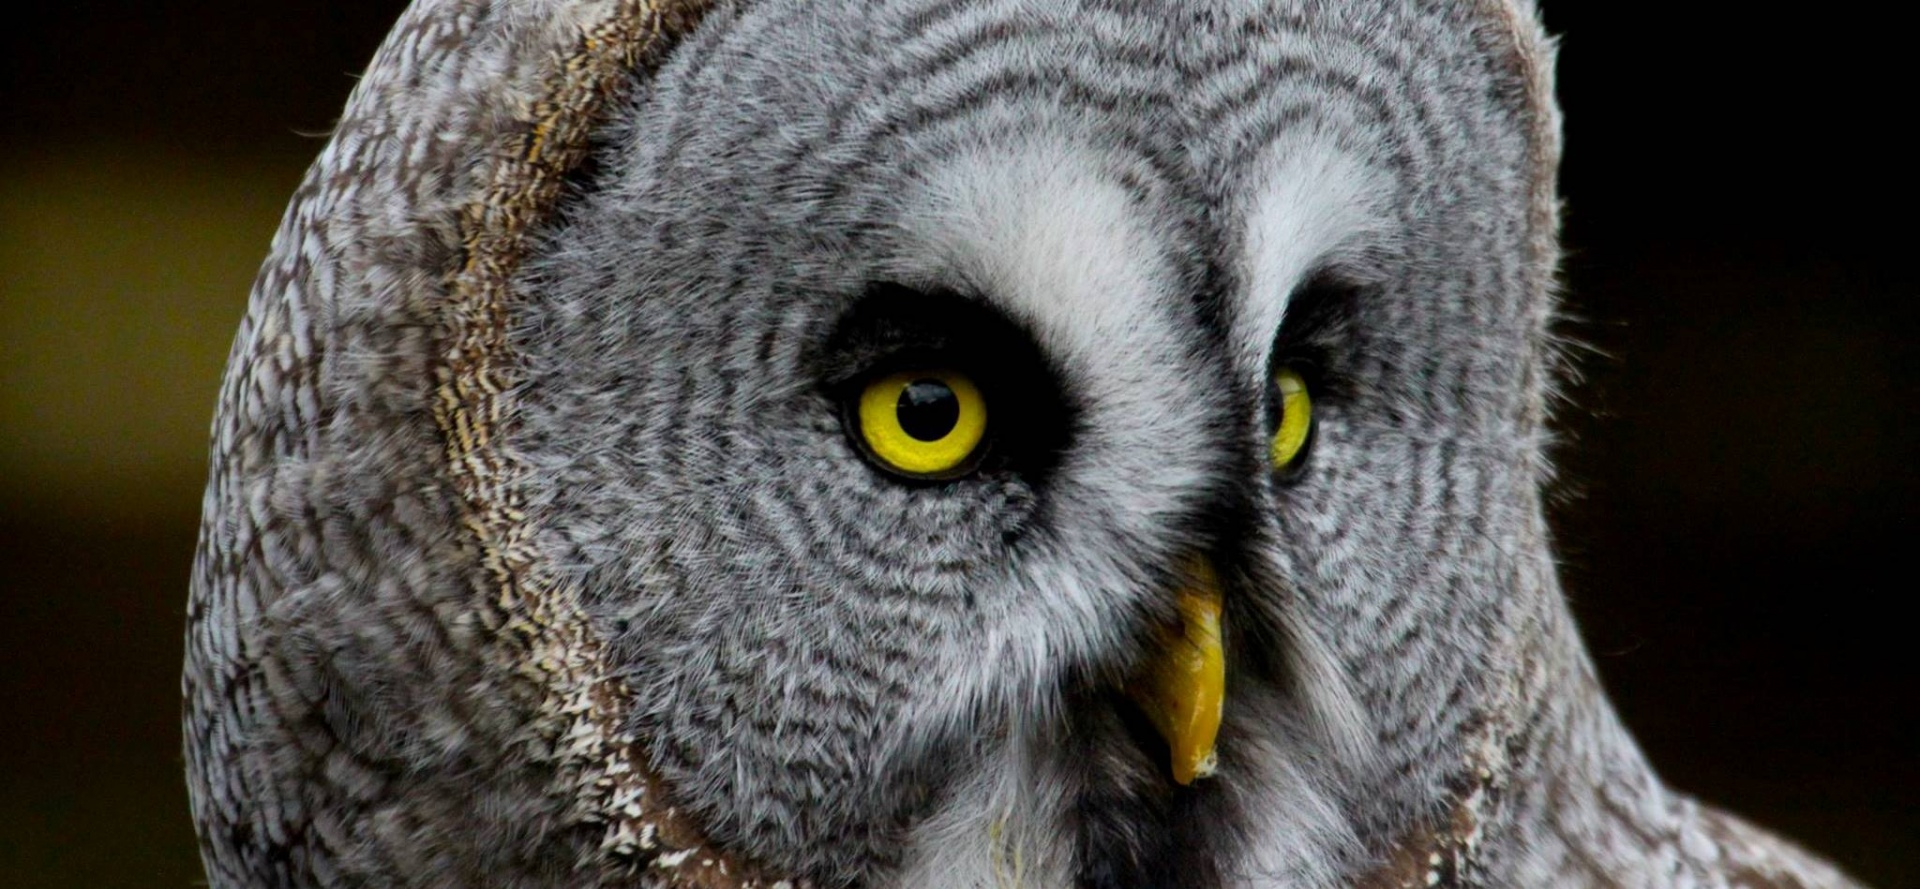 All Day Bird Of Prey Photography Course In Cheshire